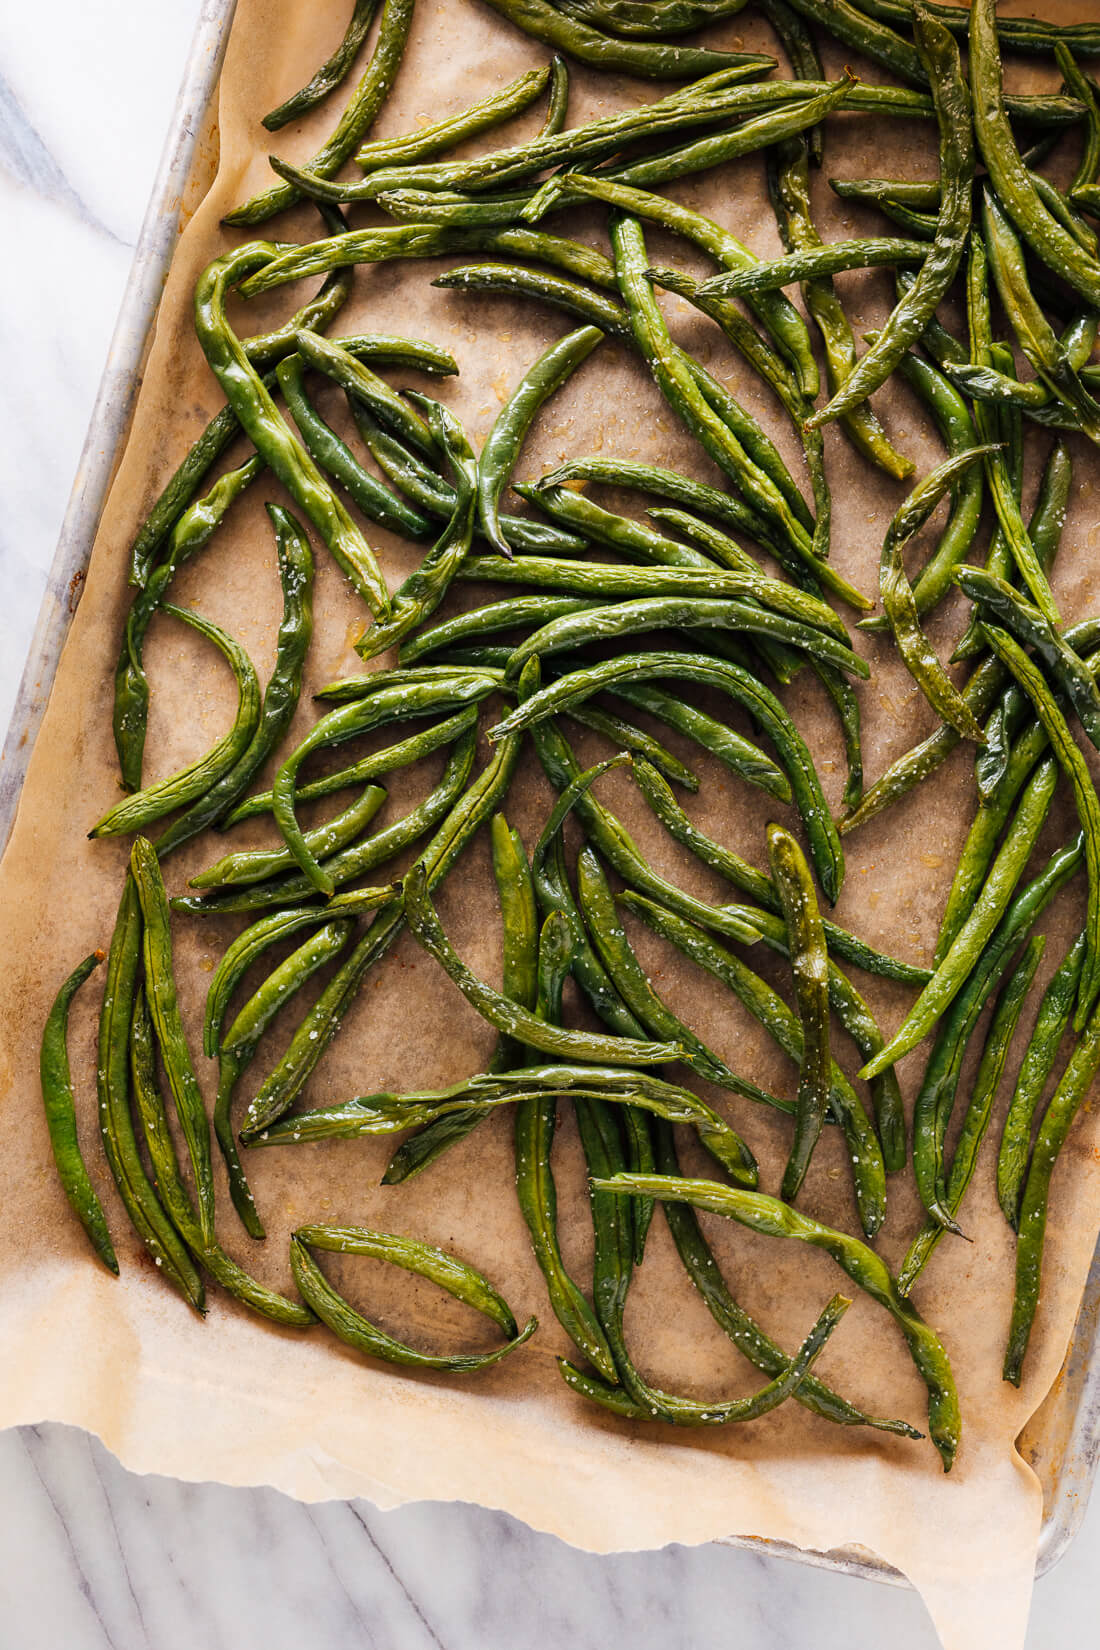 roasted green beans recipe